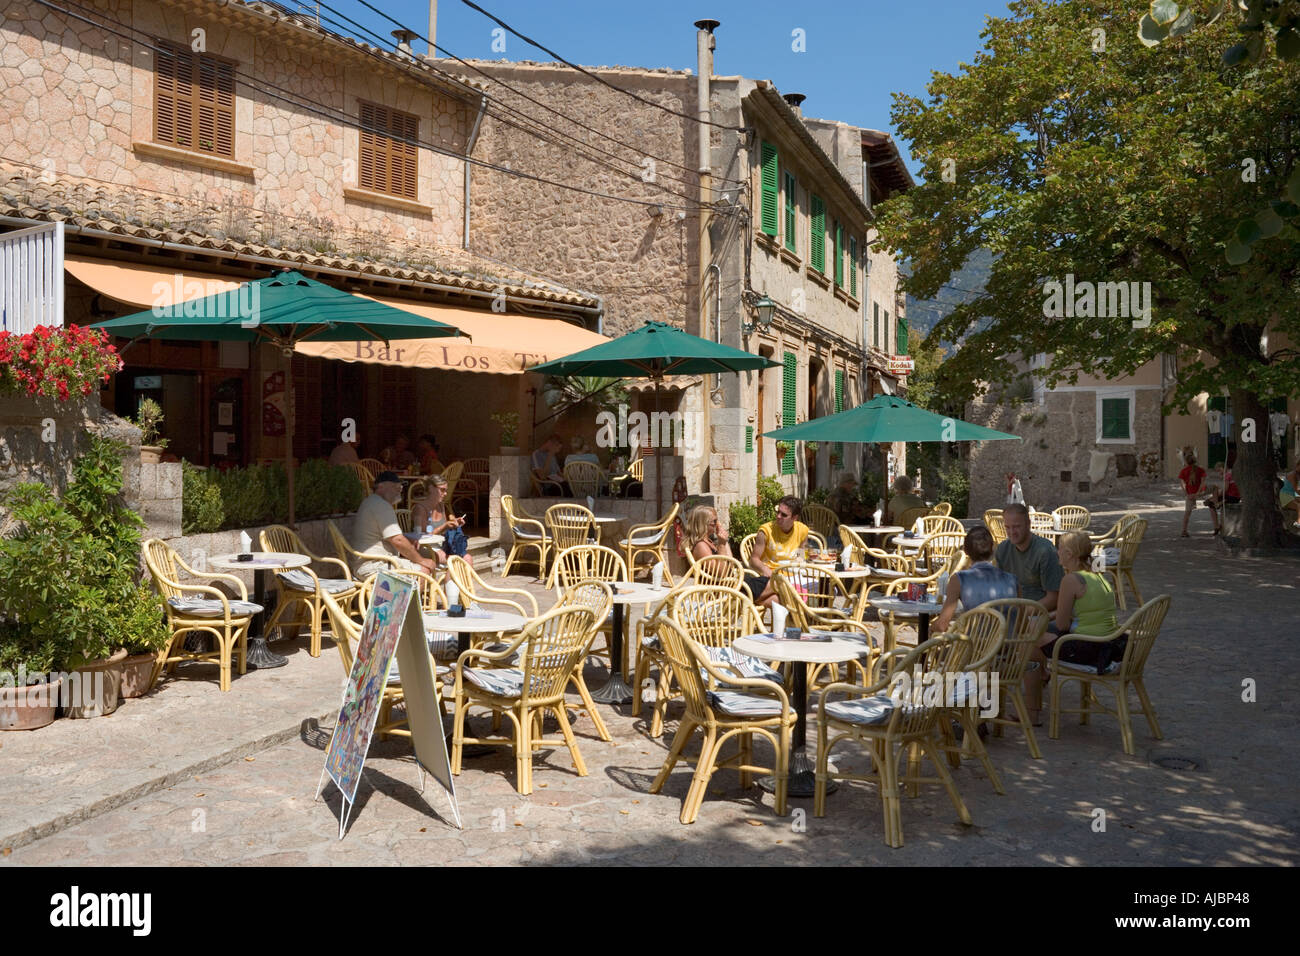 Cafe in the Placa de Cartoixa, Old Town of Valldemossa, West Coast, Mallorca, Spain - Stock Image